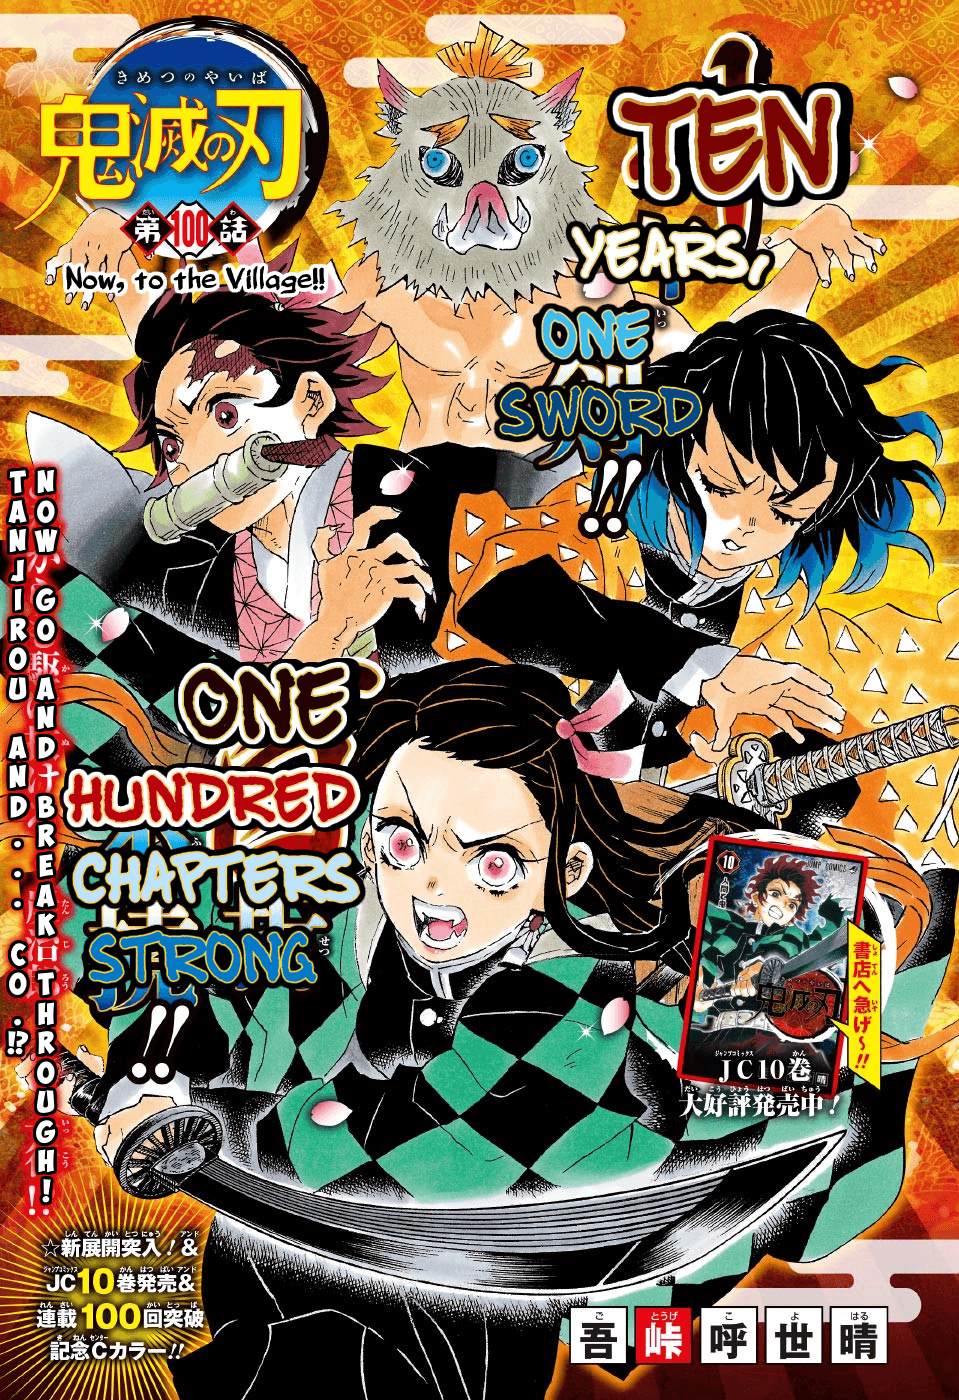 Manga Kimetsu no Yaiba chapter 100